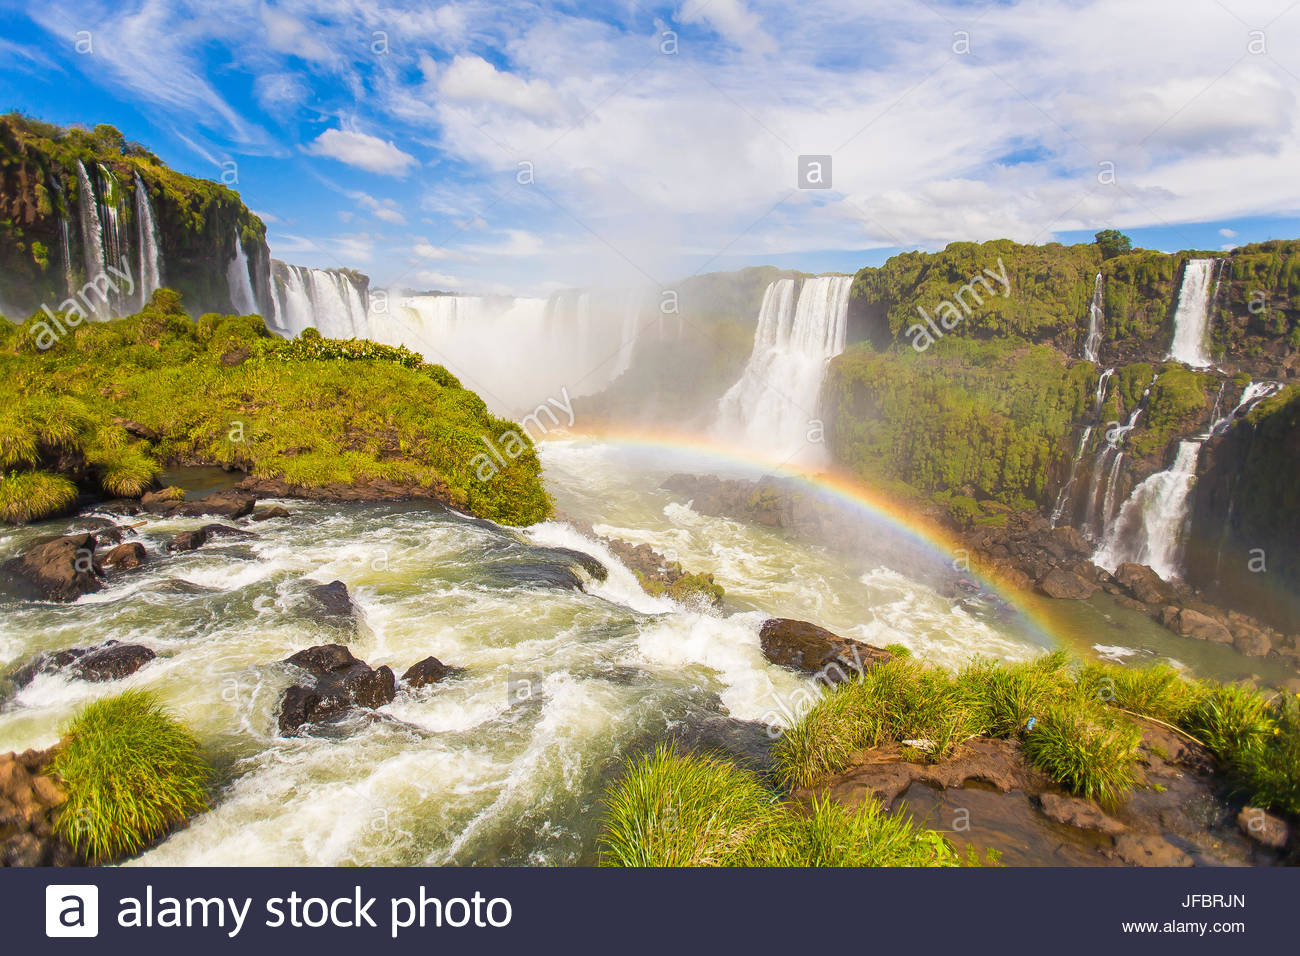 A rainbow at Iguazu waterfalls on the border of Argentina and Brazil in South America. - Stock Image